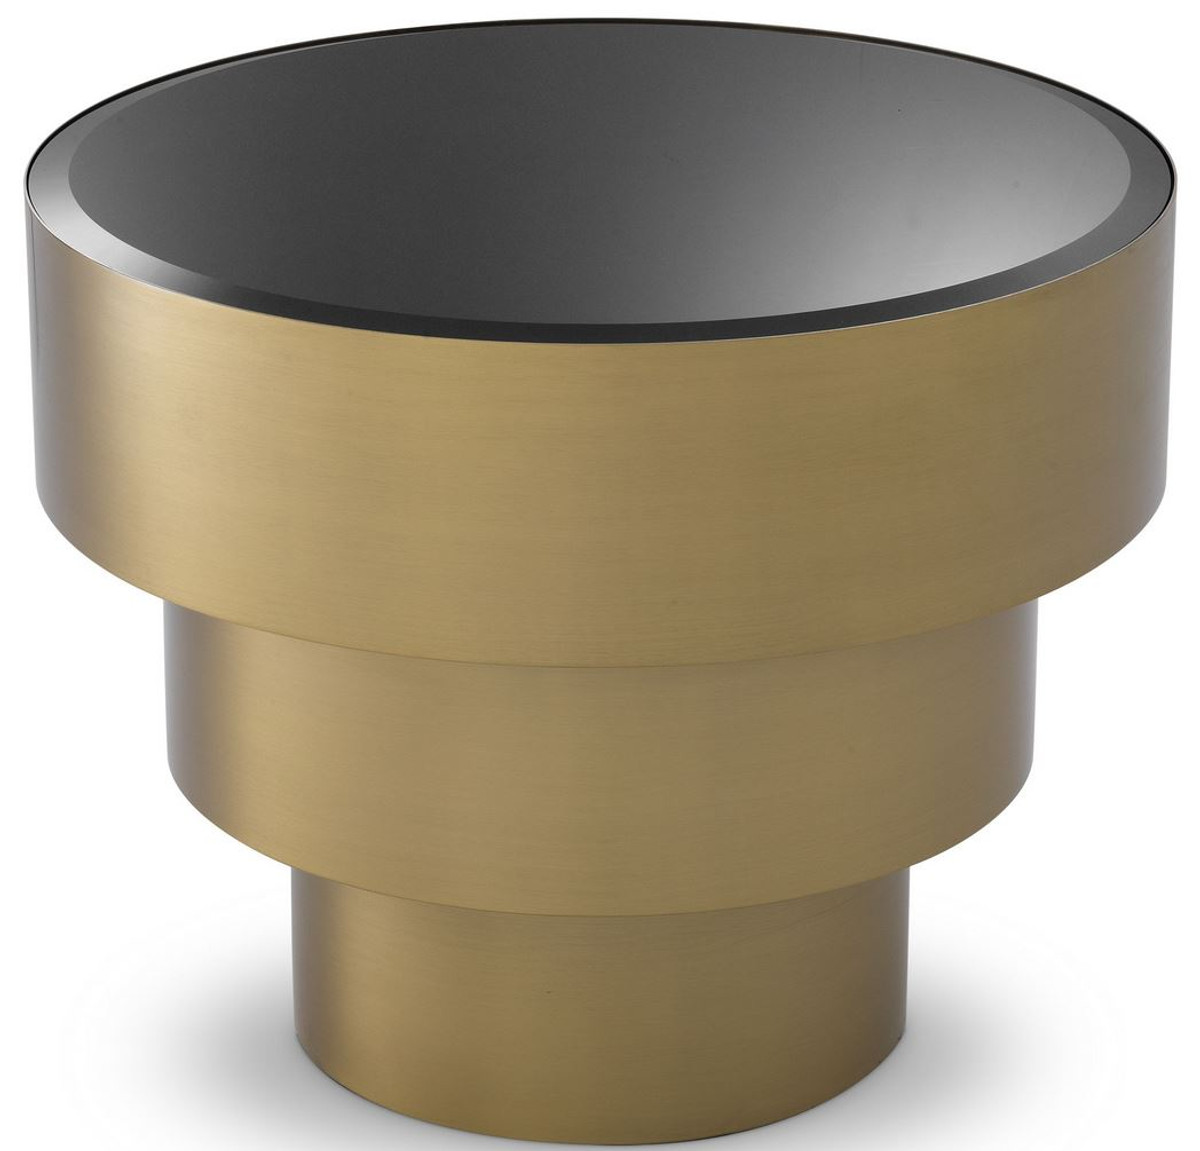 casa padrino luxury side table brass black o 55 x h 44 5 cm round stainless steel table with glass top living room furniture luxury furniture